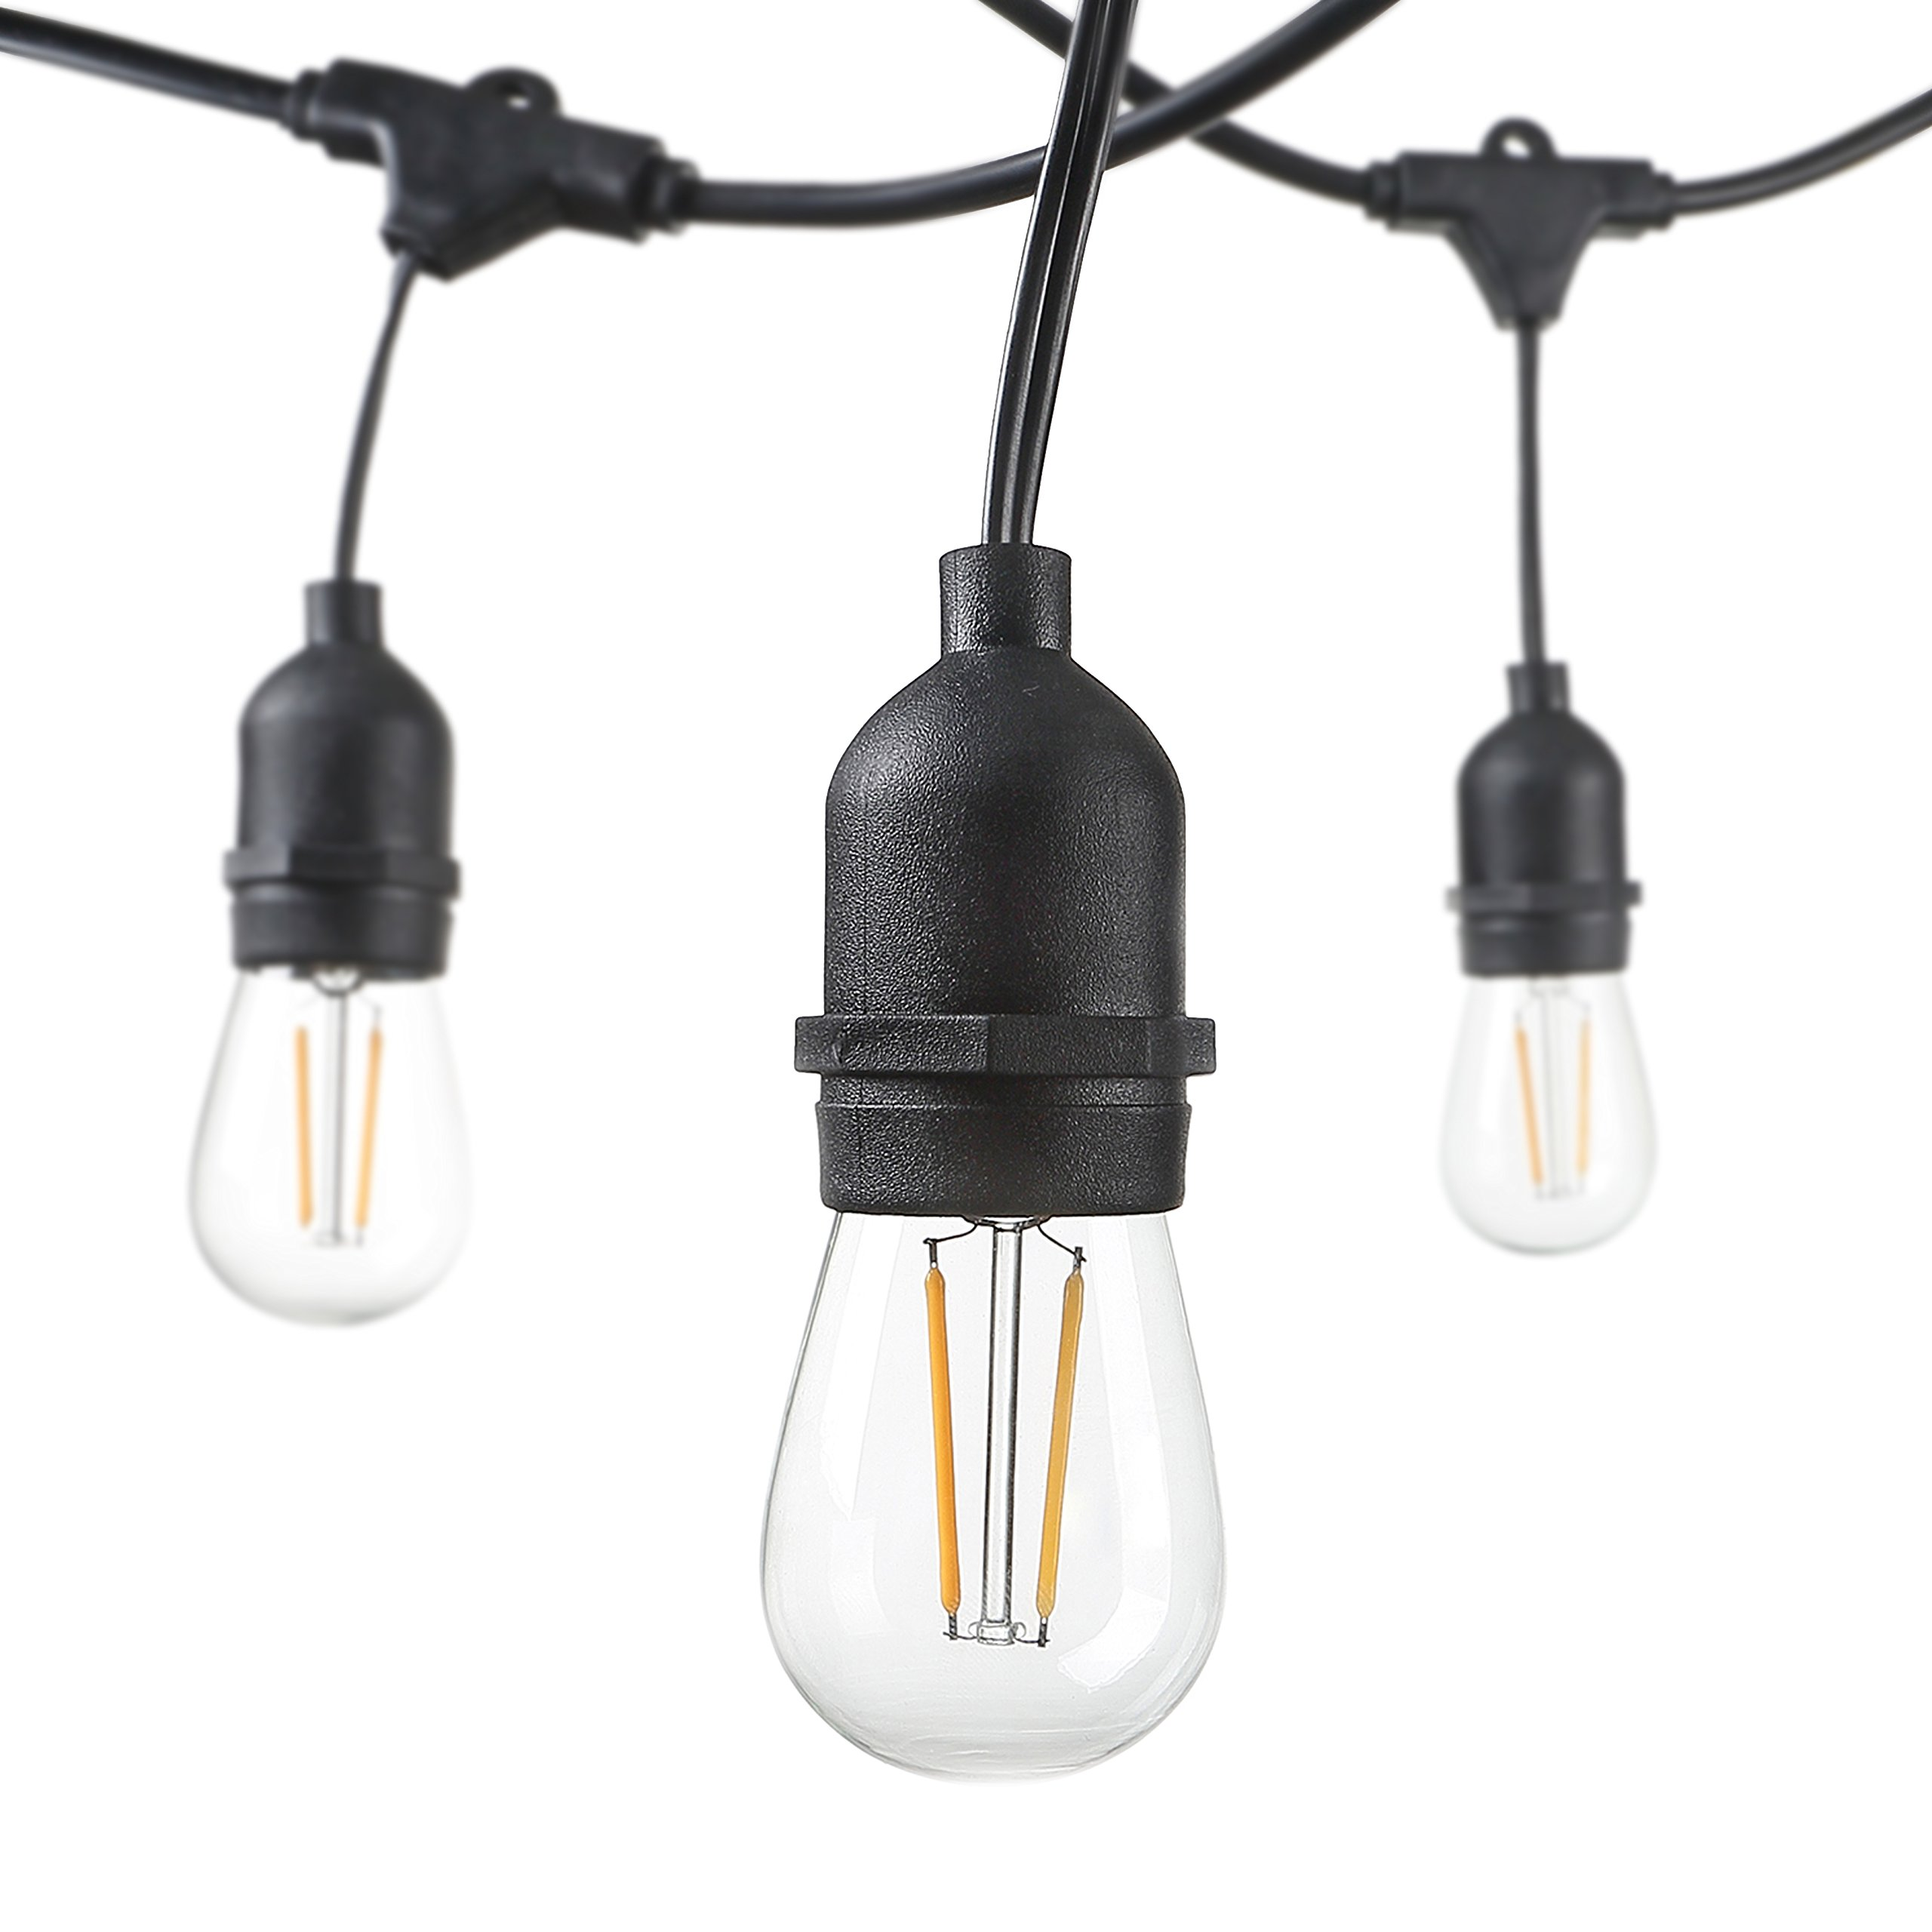 micro light marvelous black led path lights lovely string operated exterior of controlled outdoor battery threshold remote